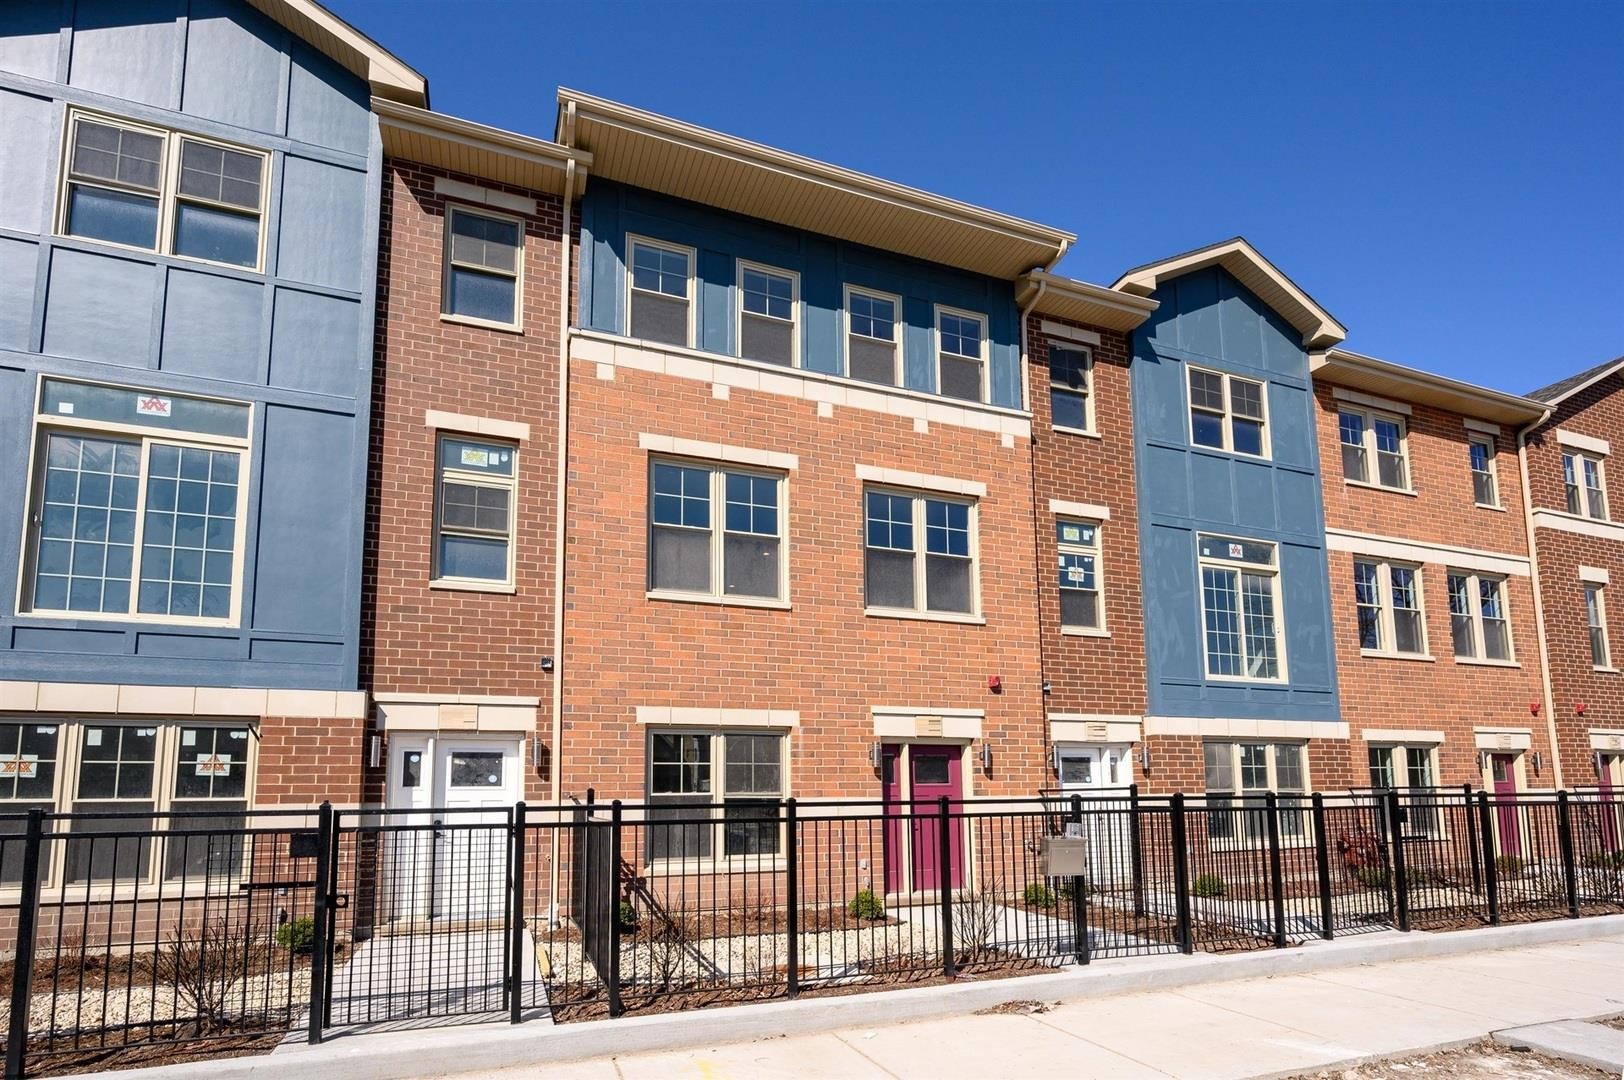 3231 S Stewart Avenue, Chicago, IL 60616 - #: 10962584